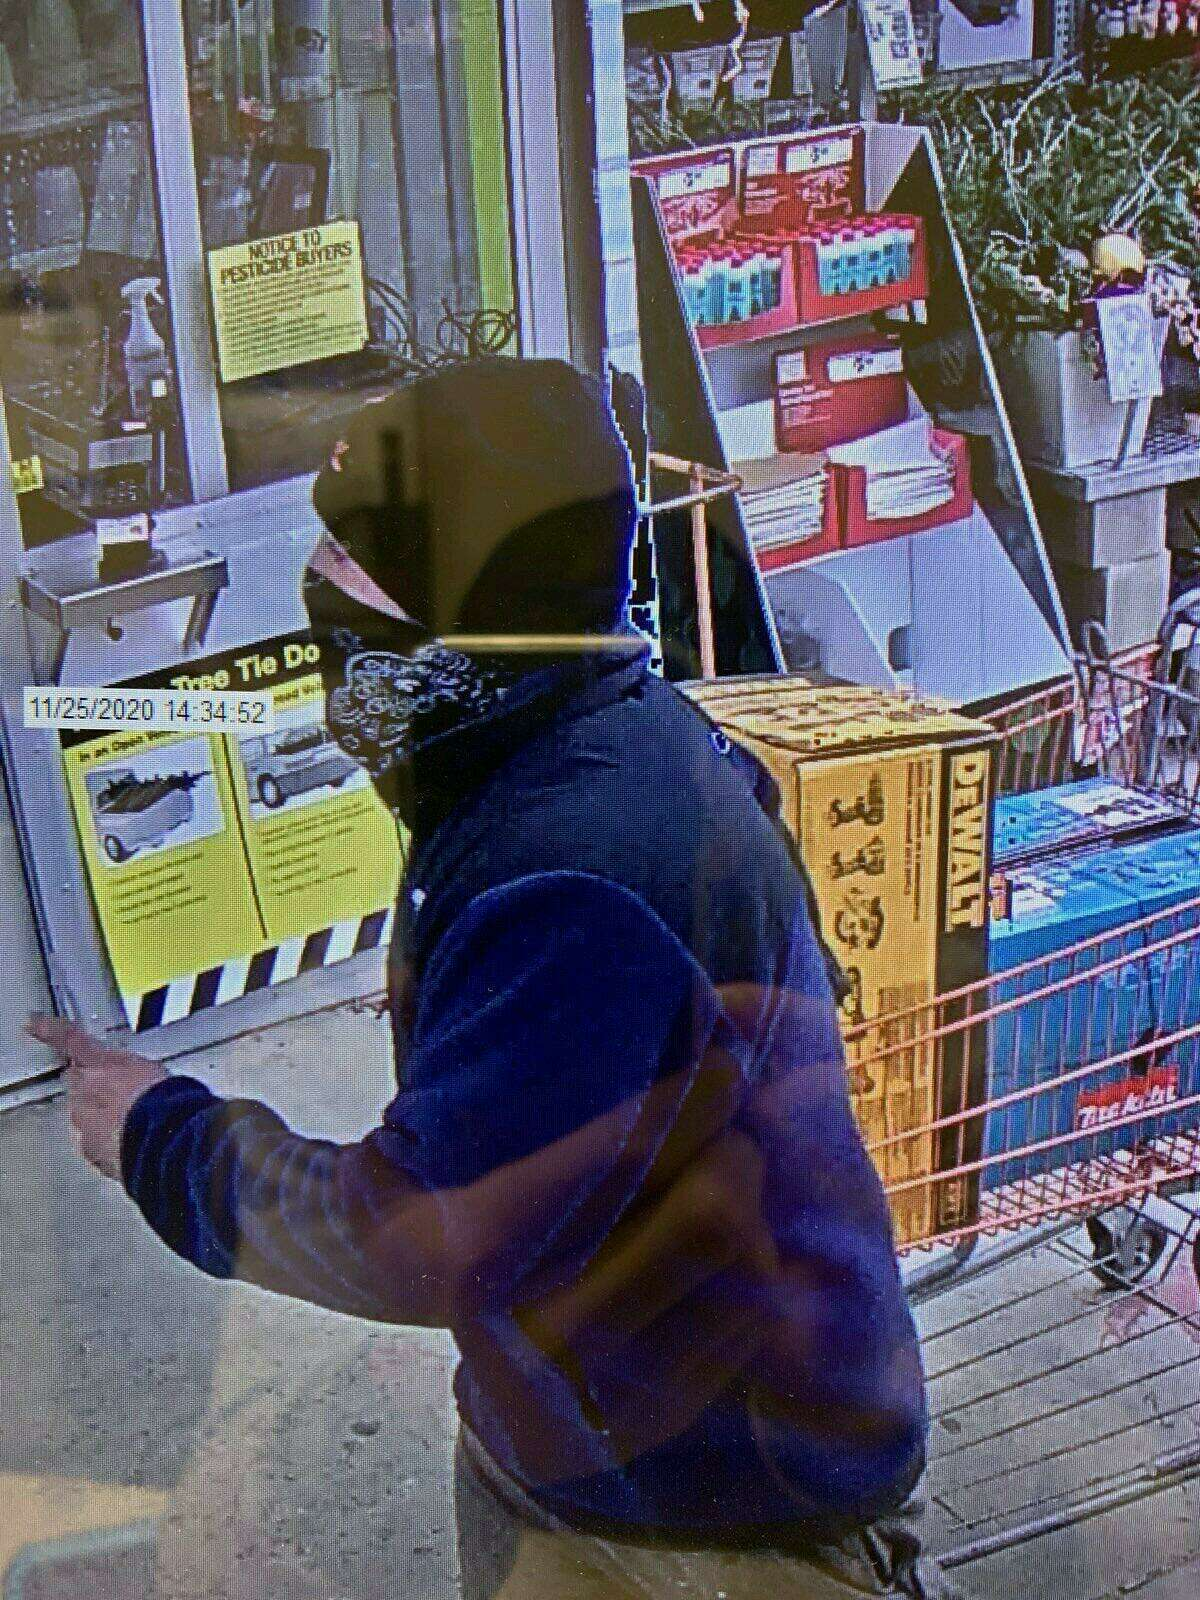 Police are looking for a man who they say pulled a knife on Home Depot employees when they confronted him about shoplifting.